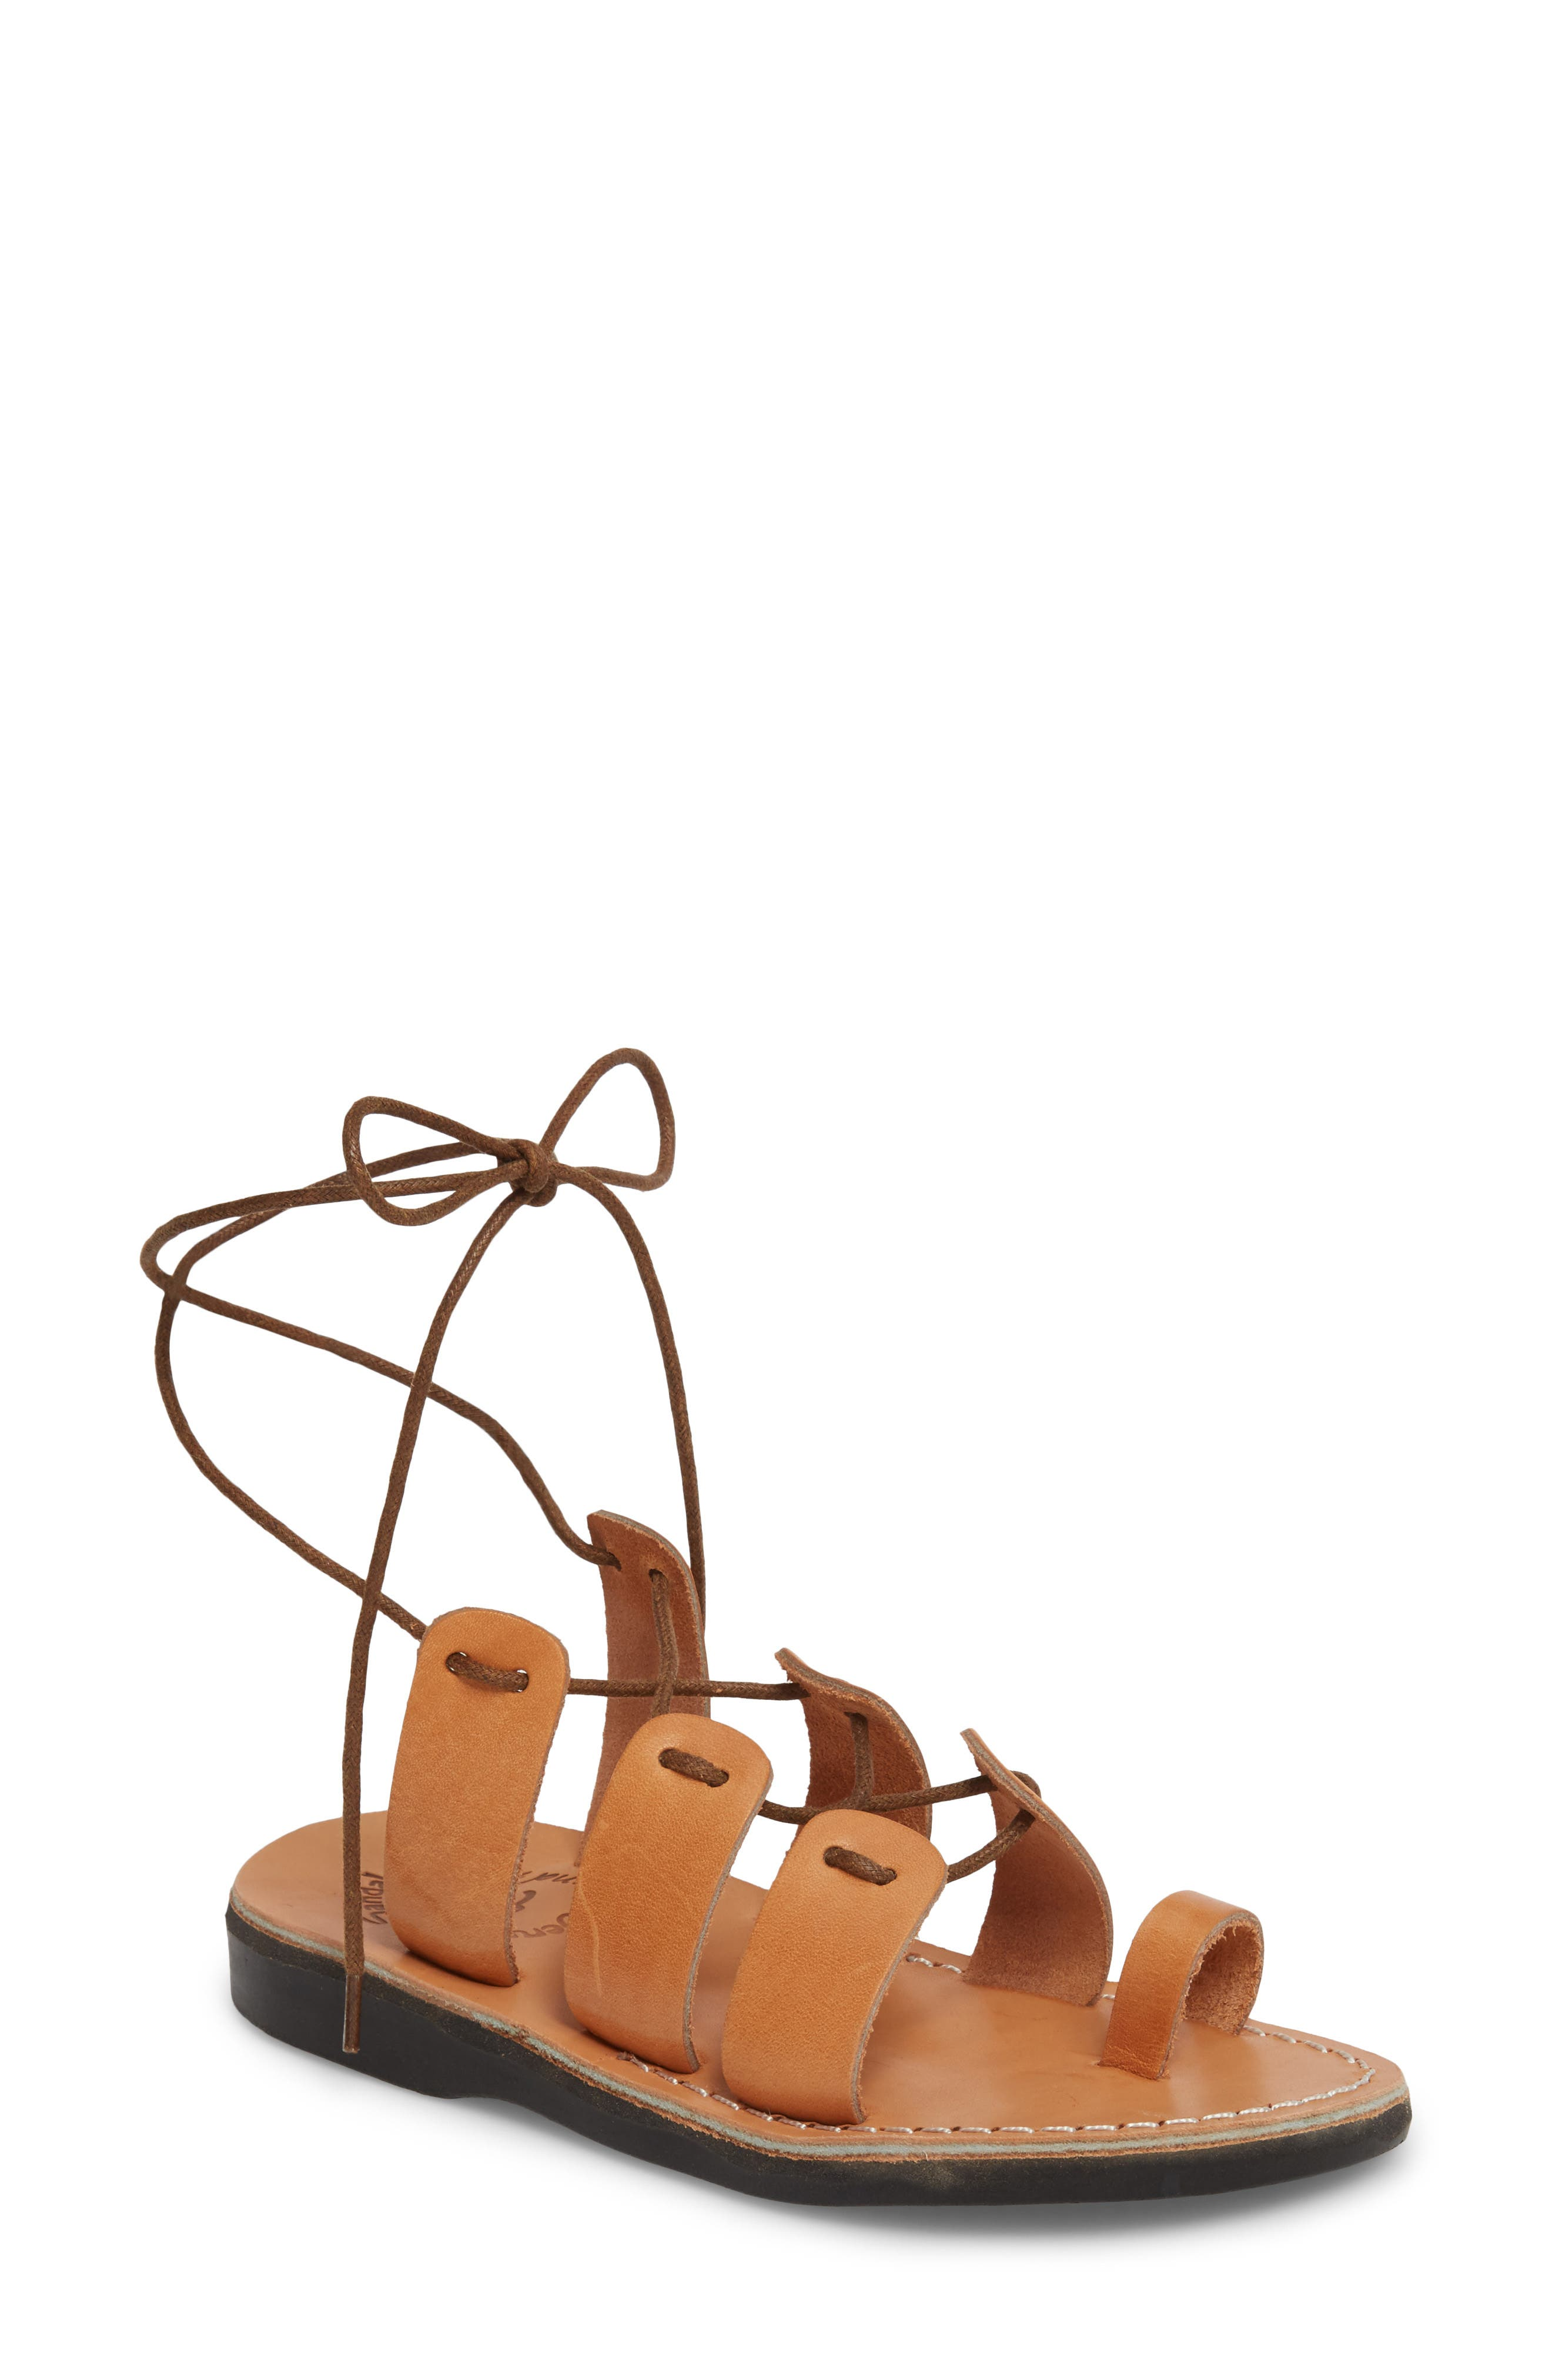 Deborah Wraparound Laces Sandal,                         Main,                         color, Tan Leather